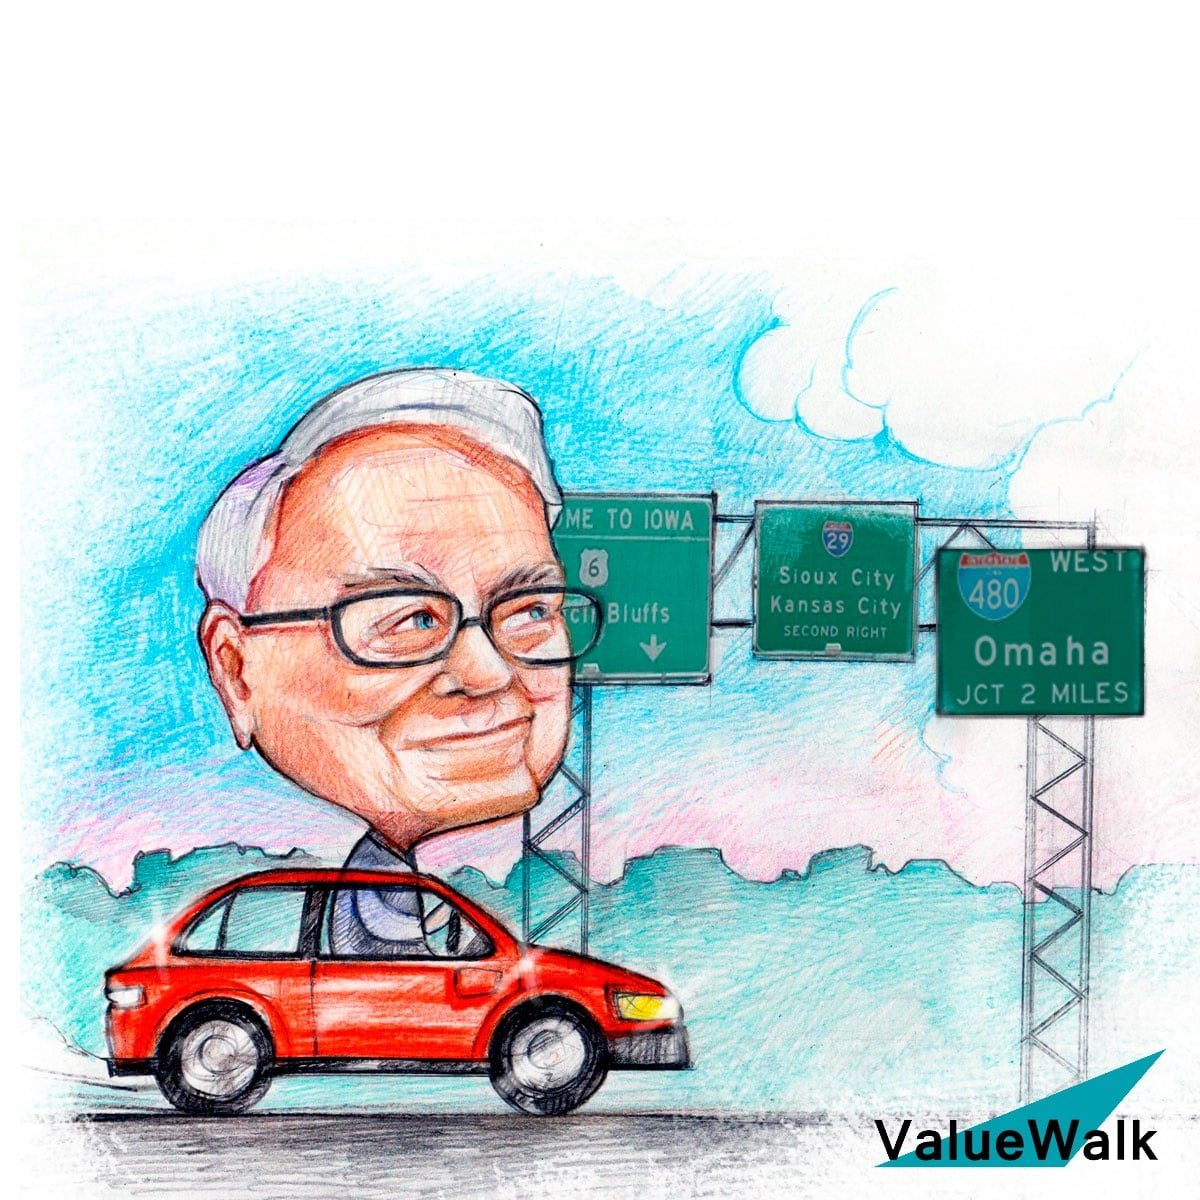 Valuation Model For Berkshire warren buffett index funds Berkshire Hathaway's Future Warren Buffett coronavirus Billionaire Investor Warren Buffett Berkshire Hathaway chairman and CEO Warren Buffett interview NASDAQ:AAPL shares of apple warren buffett index funds Warren Buffett estimate of intrinsic value